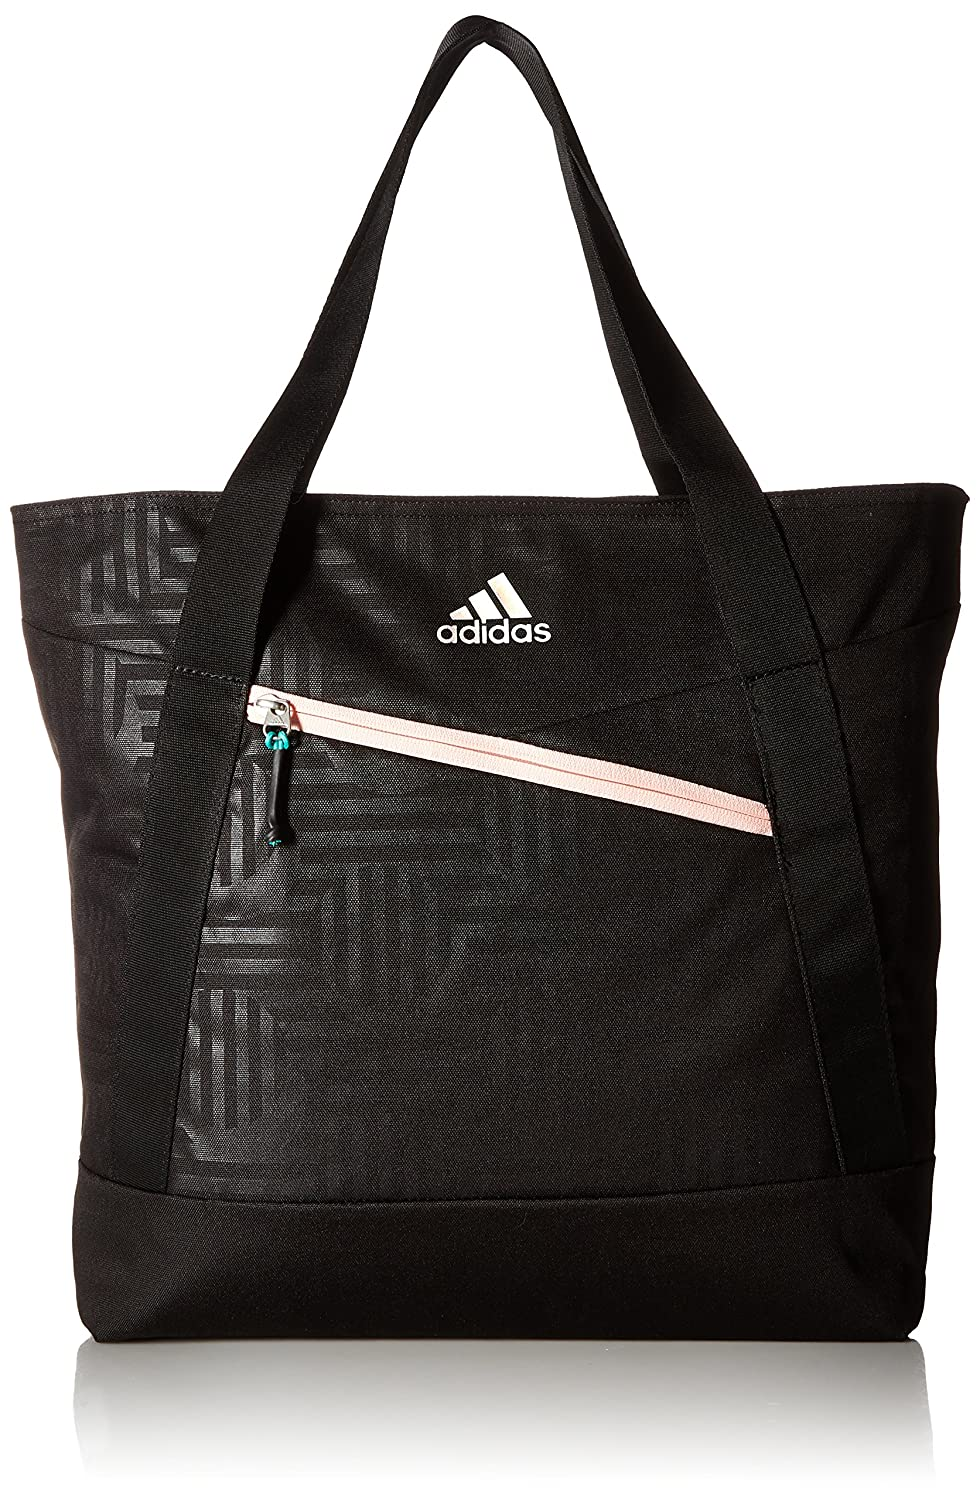 Adidas Duffels   Sport Bags discounted Sale – Recipes with More 74291bf859c93